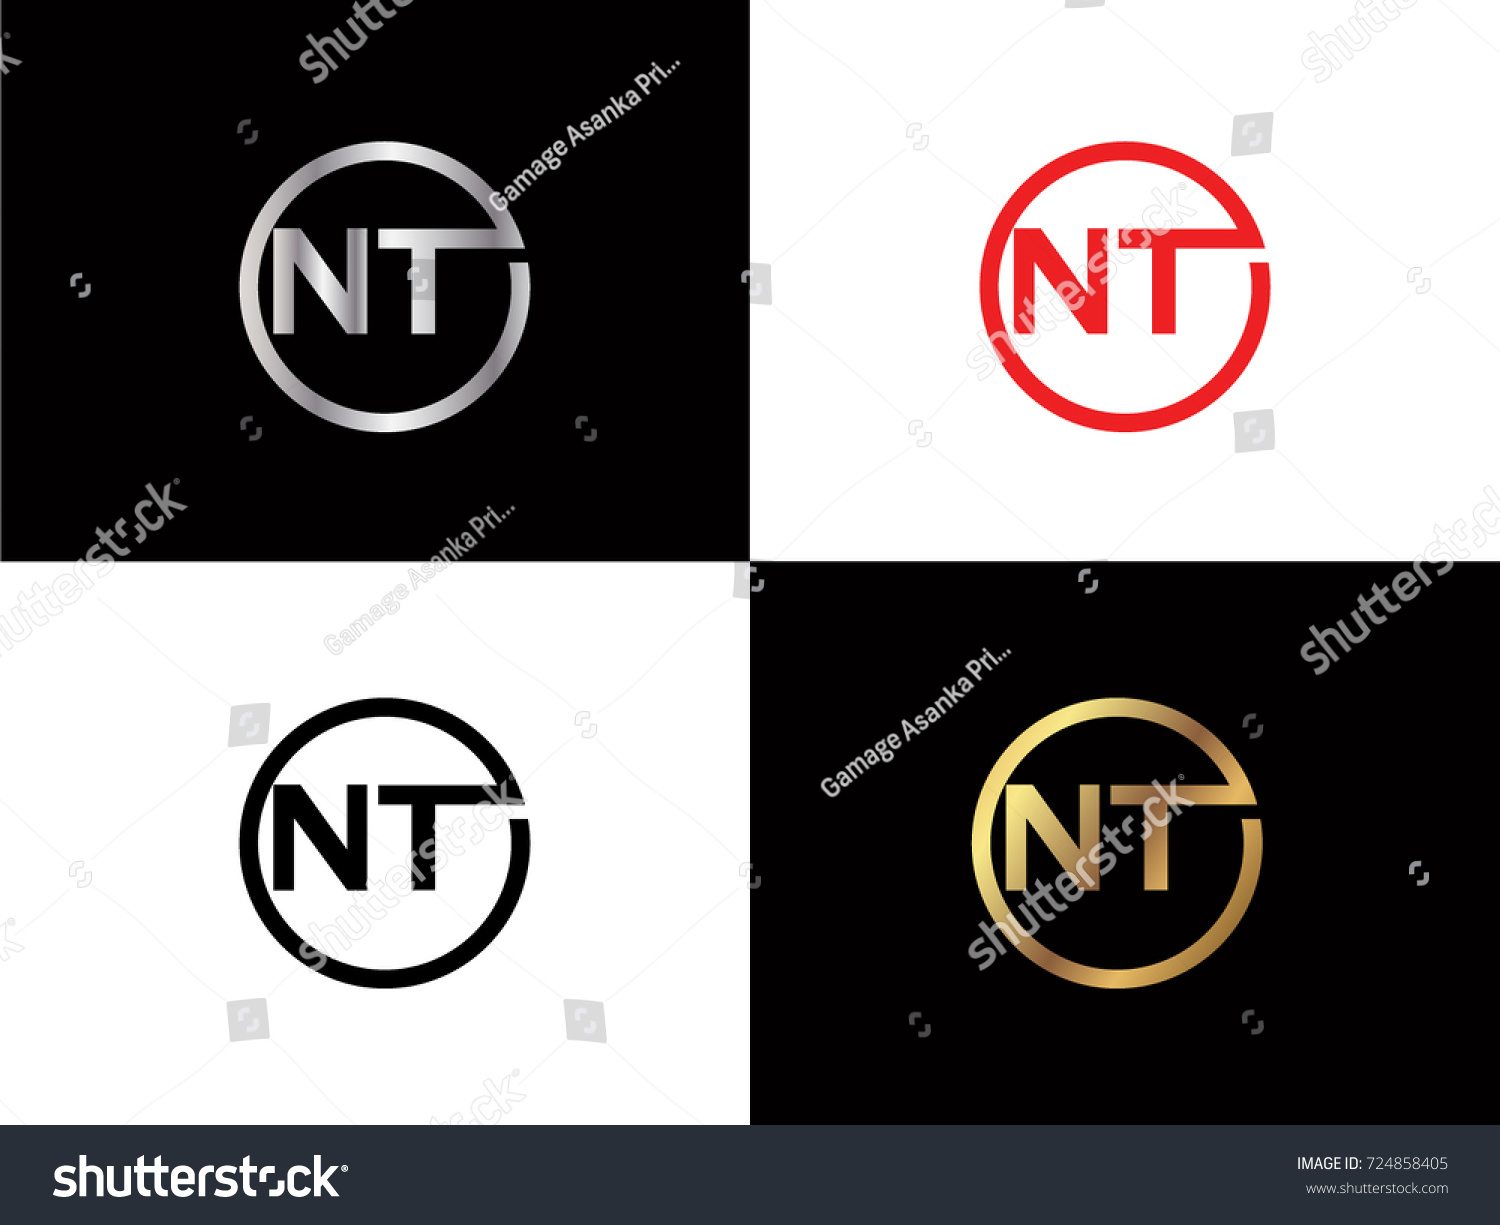 Nt Text Gold Black Silver Modern Stock Vector Royalty Free